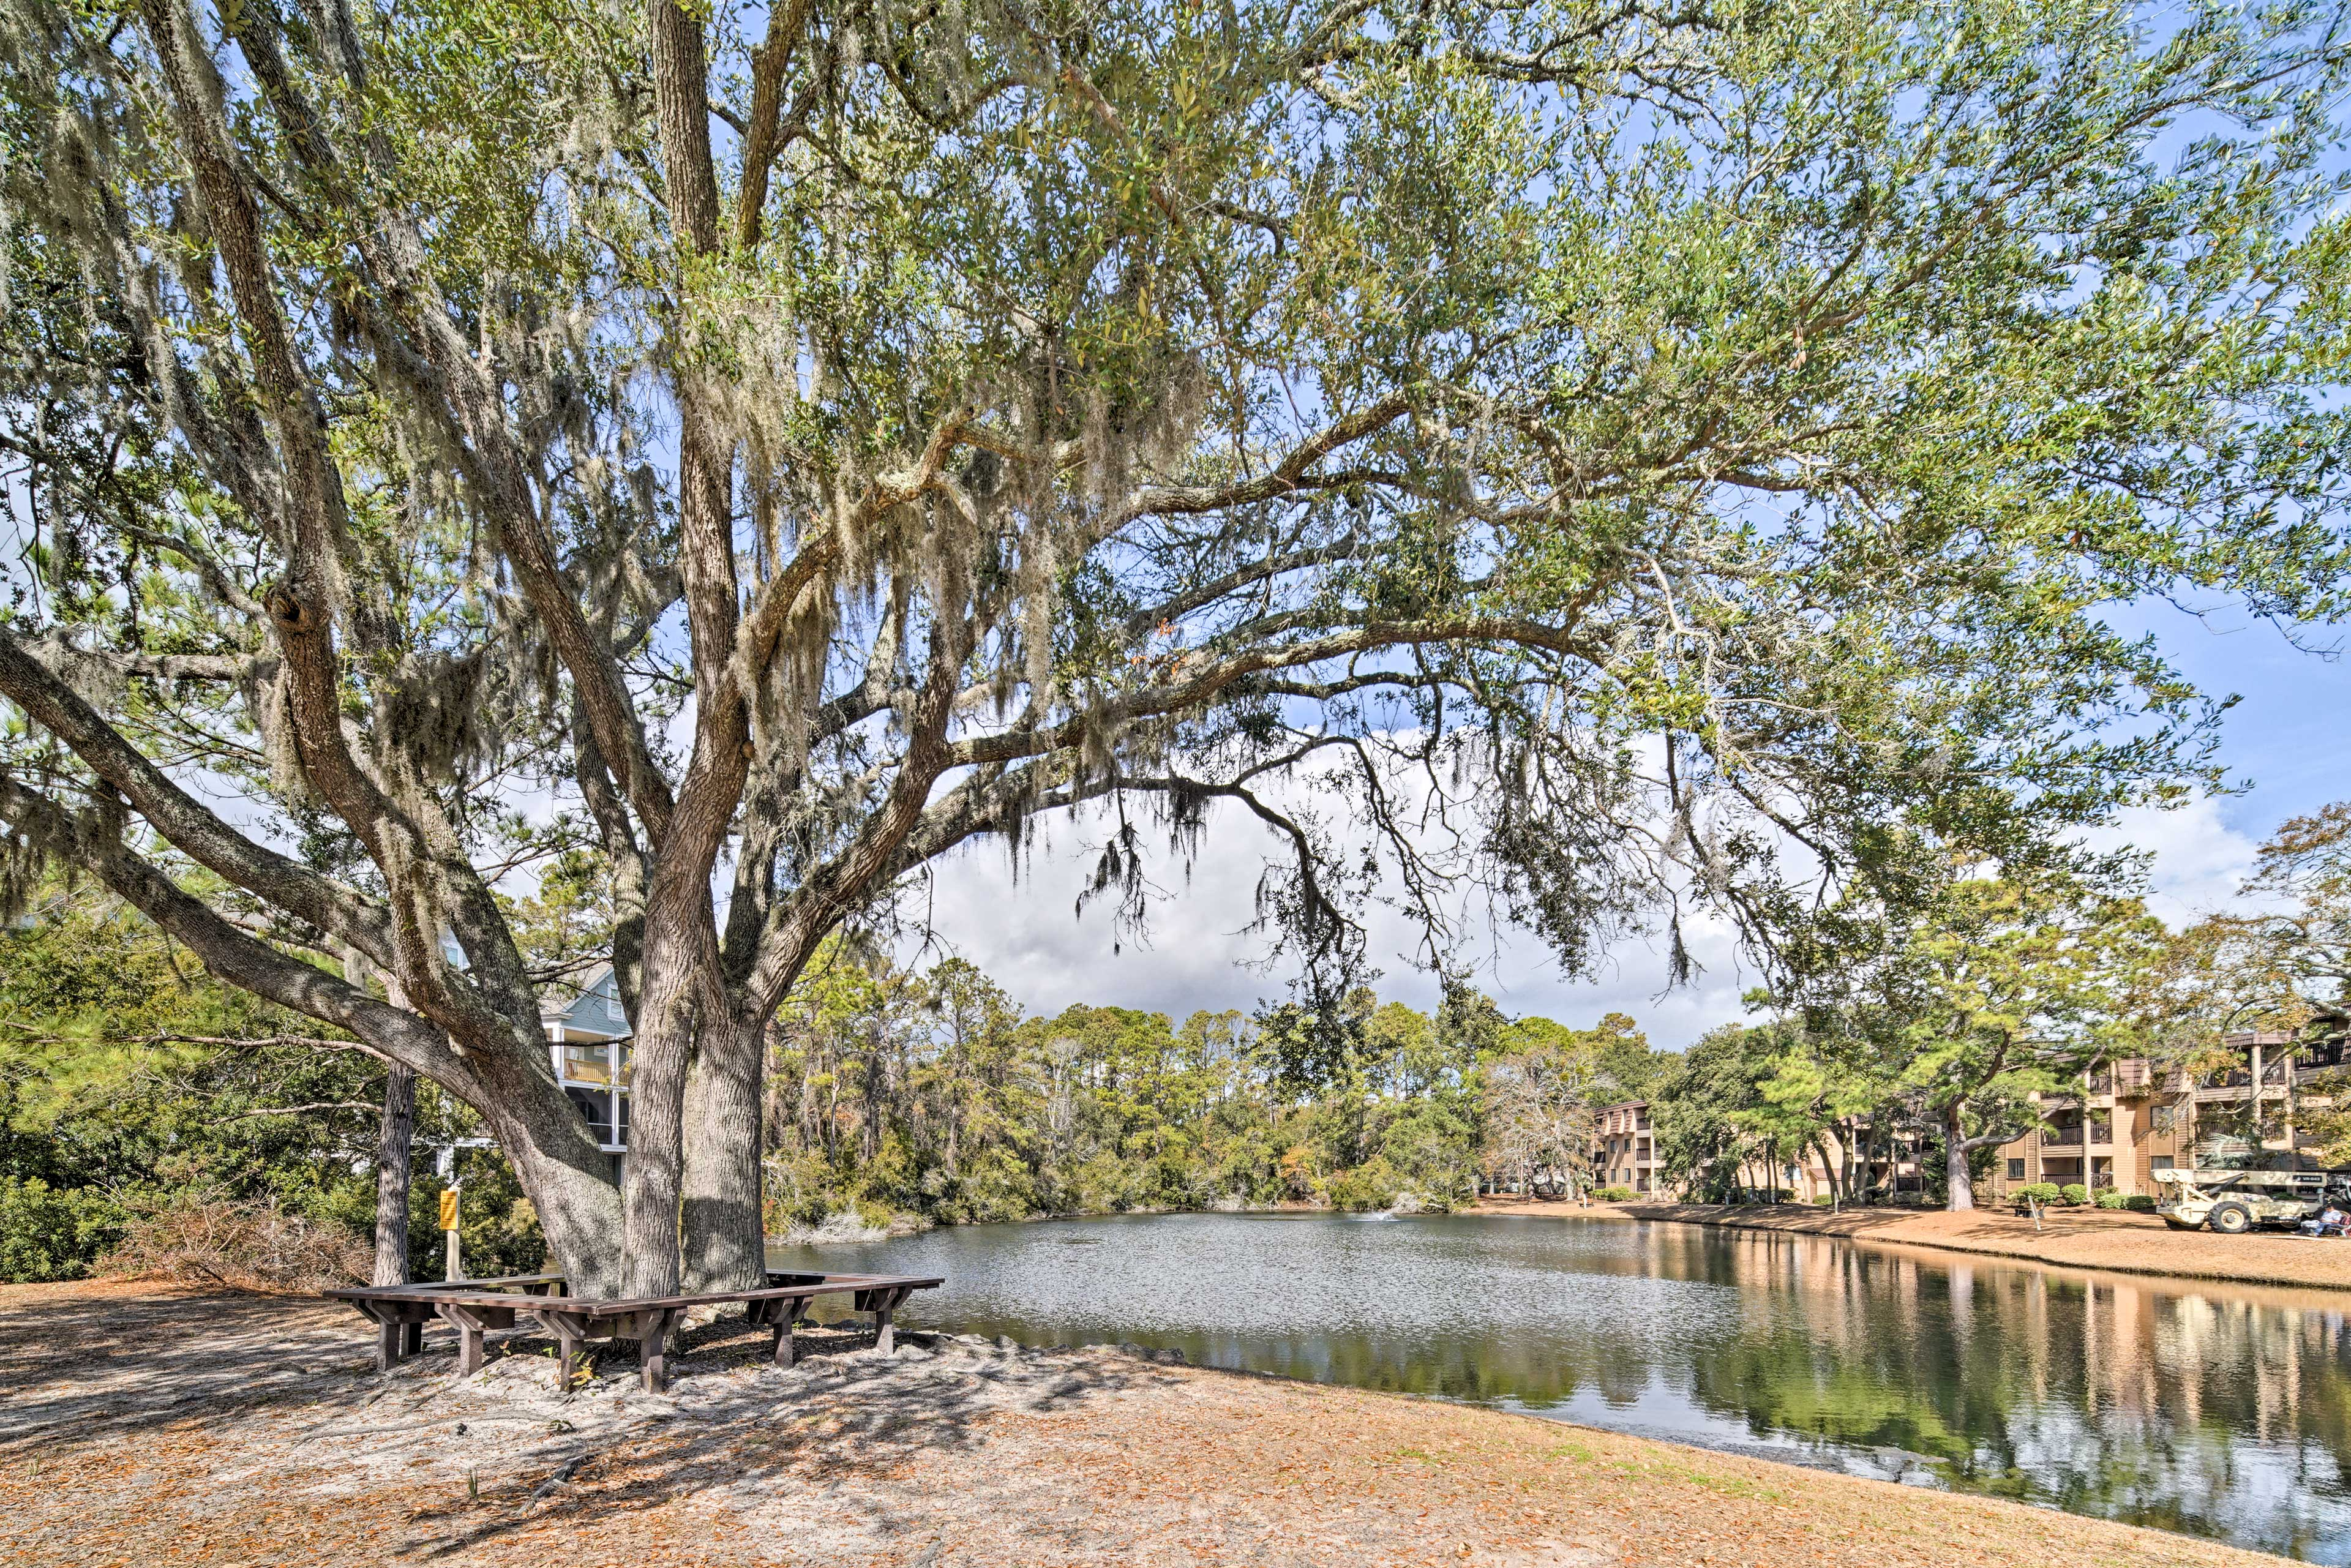 You'll be treated to picture-perfect scenery throughout Hilton Head Island.